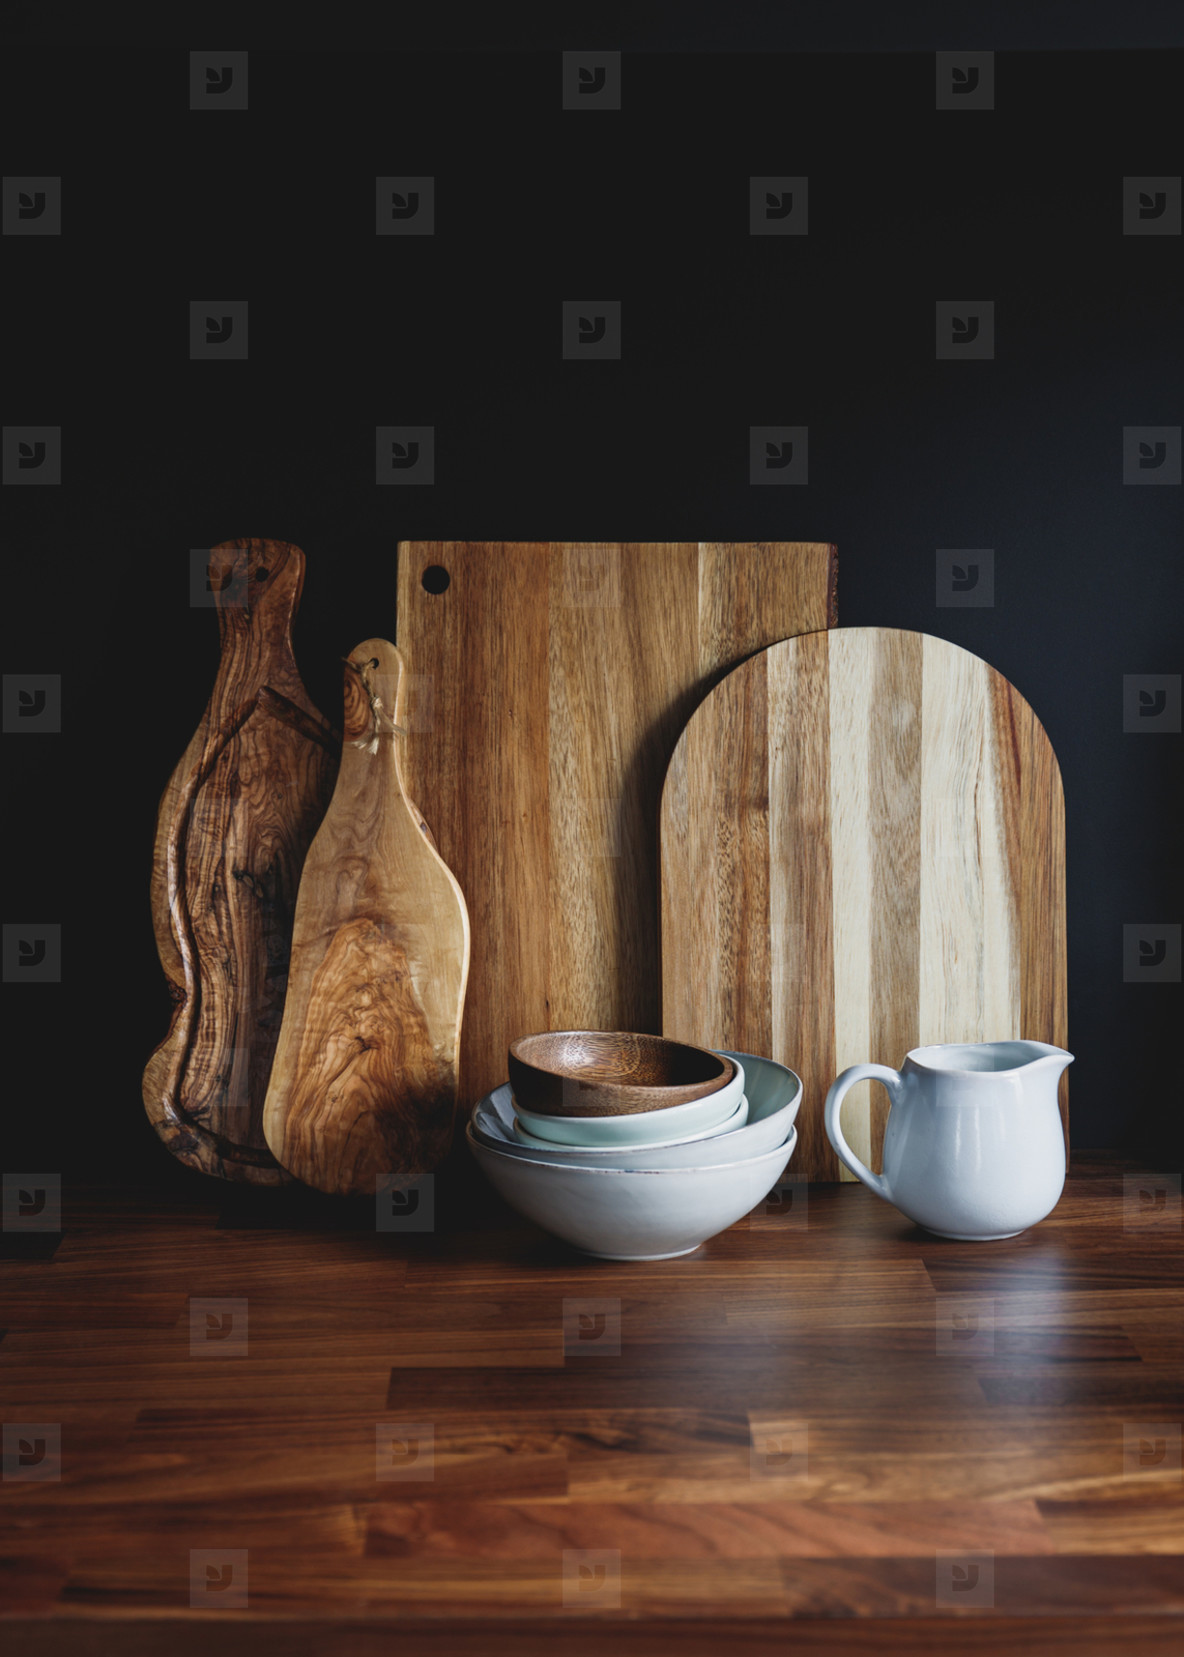 Set of wooden cutting board and ceramic dishes on a wooden kitchen table over black background  The concept of modern style rustic kitchen interior